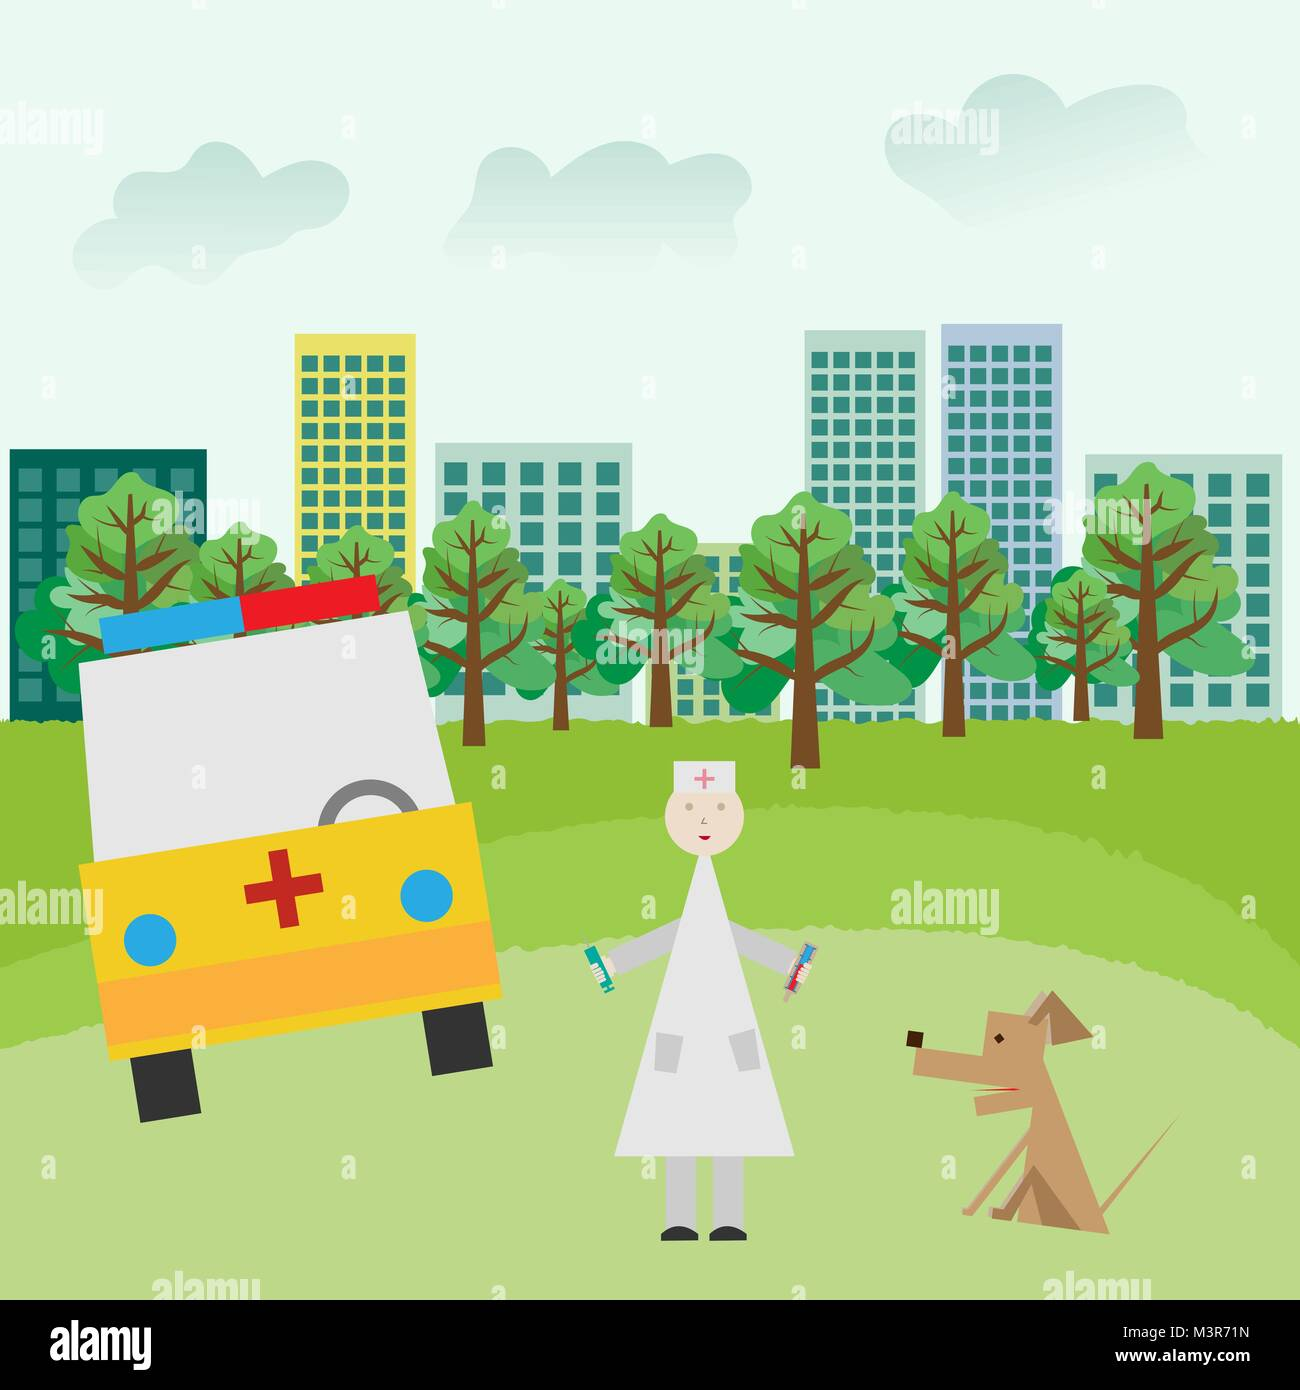 First aid arrived in the park to provide first aid. - Stock Vector